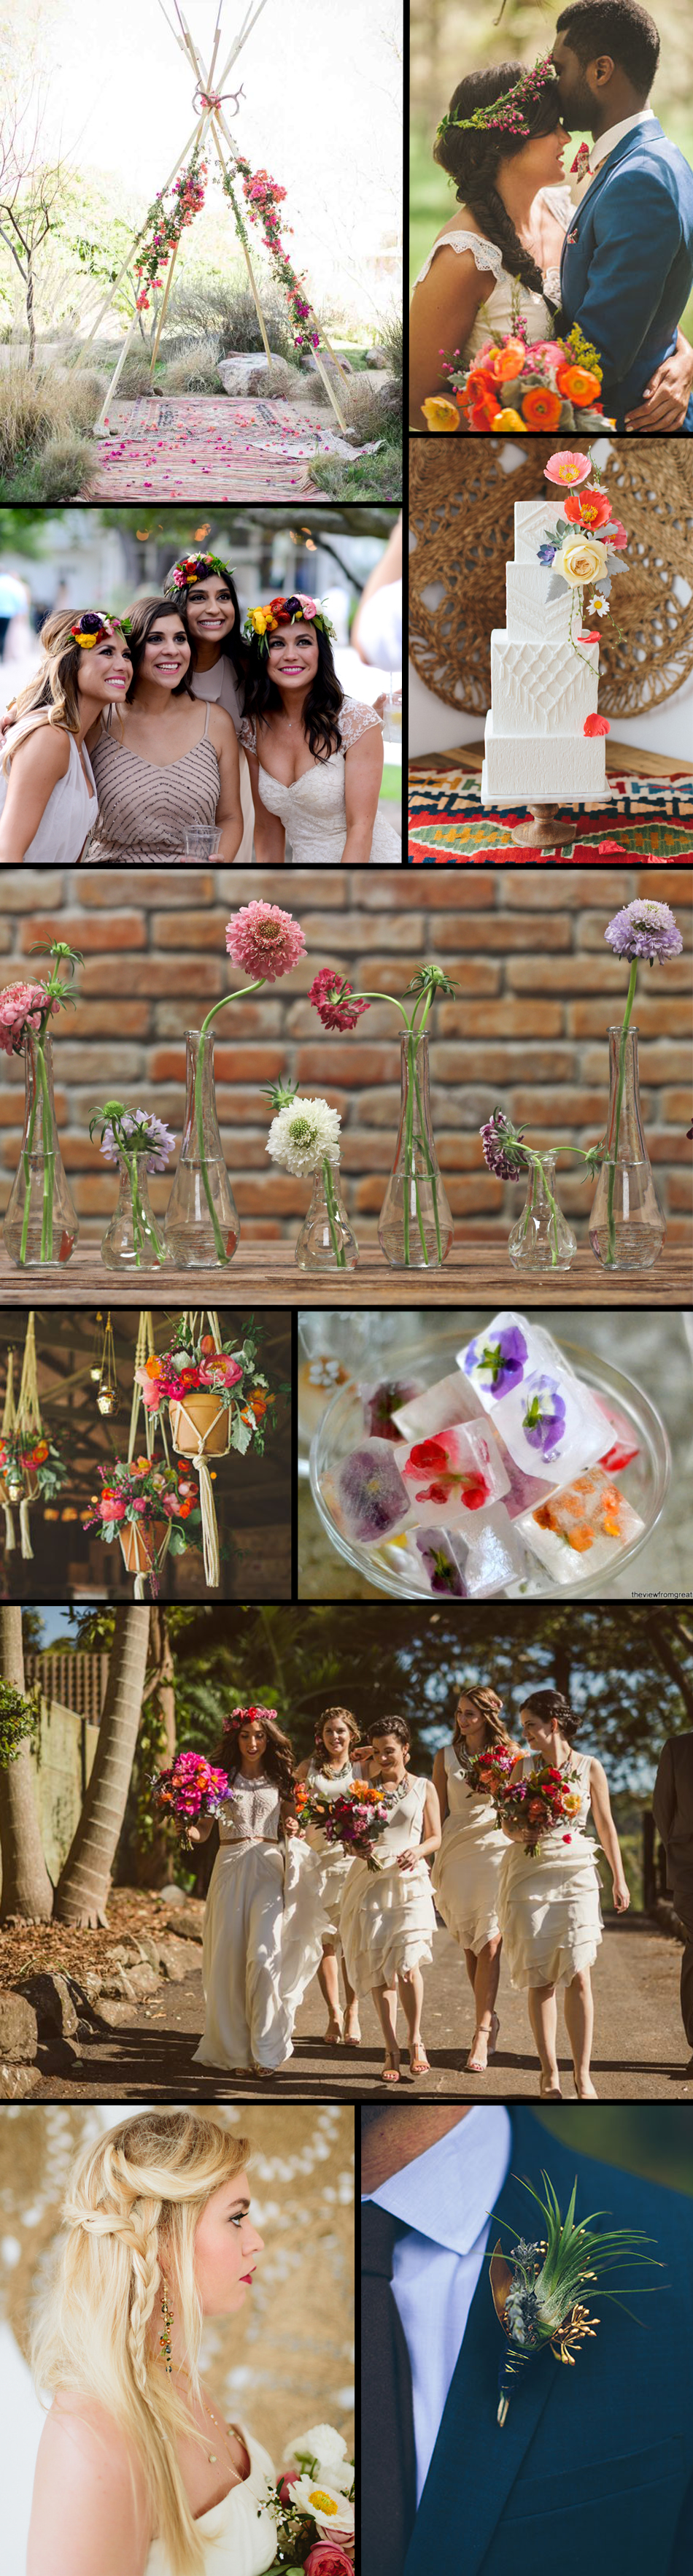 The only thing that could make the effortlessly chic Bohemian wedding theme even more appealing is adding in a heavy dose of color!